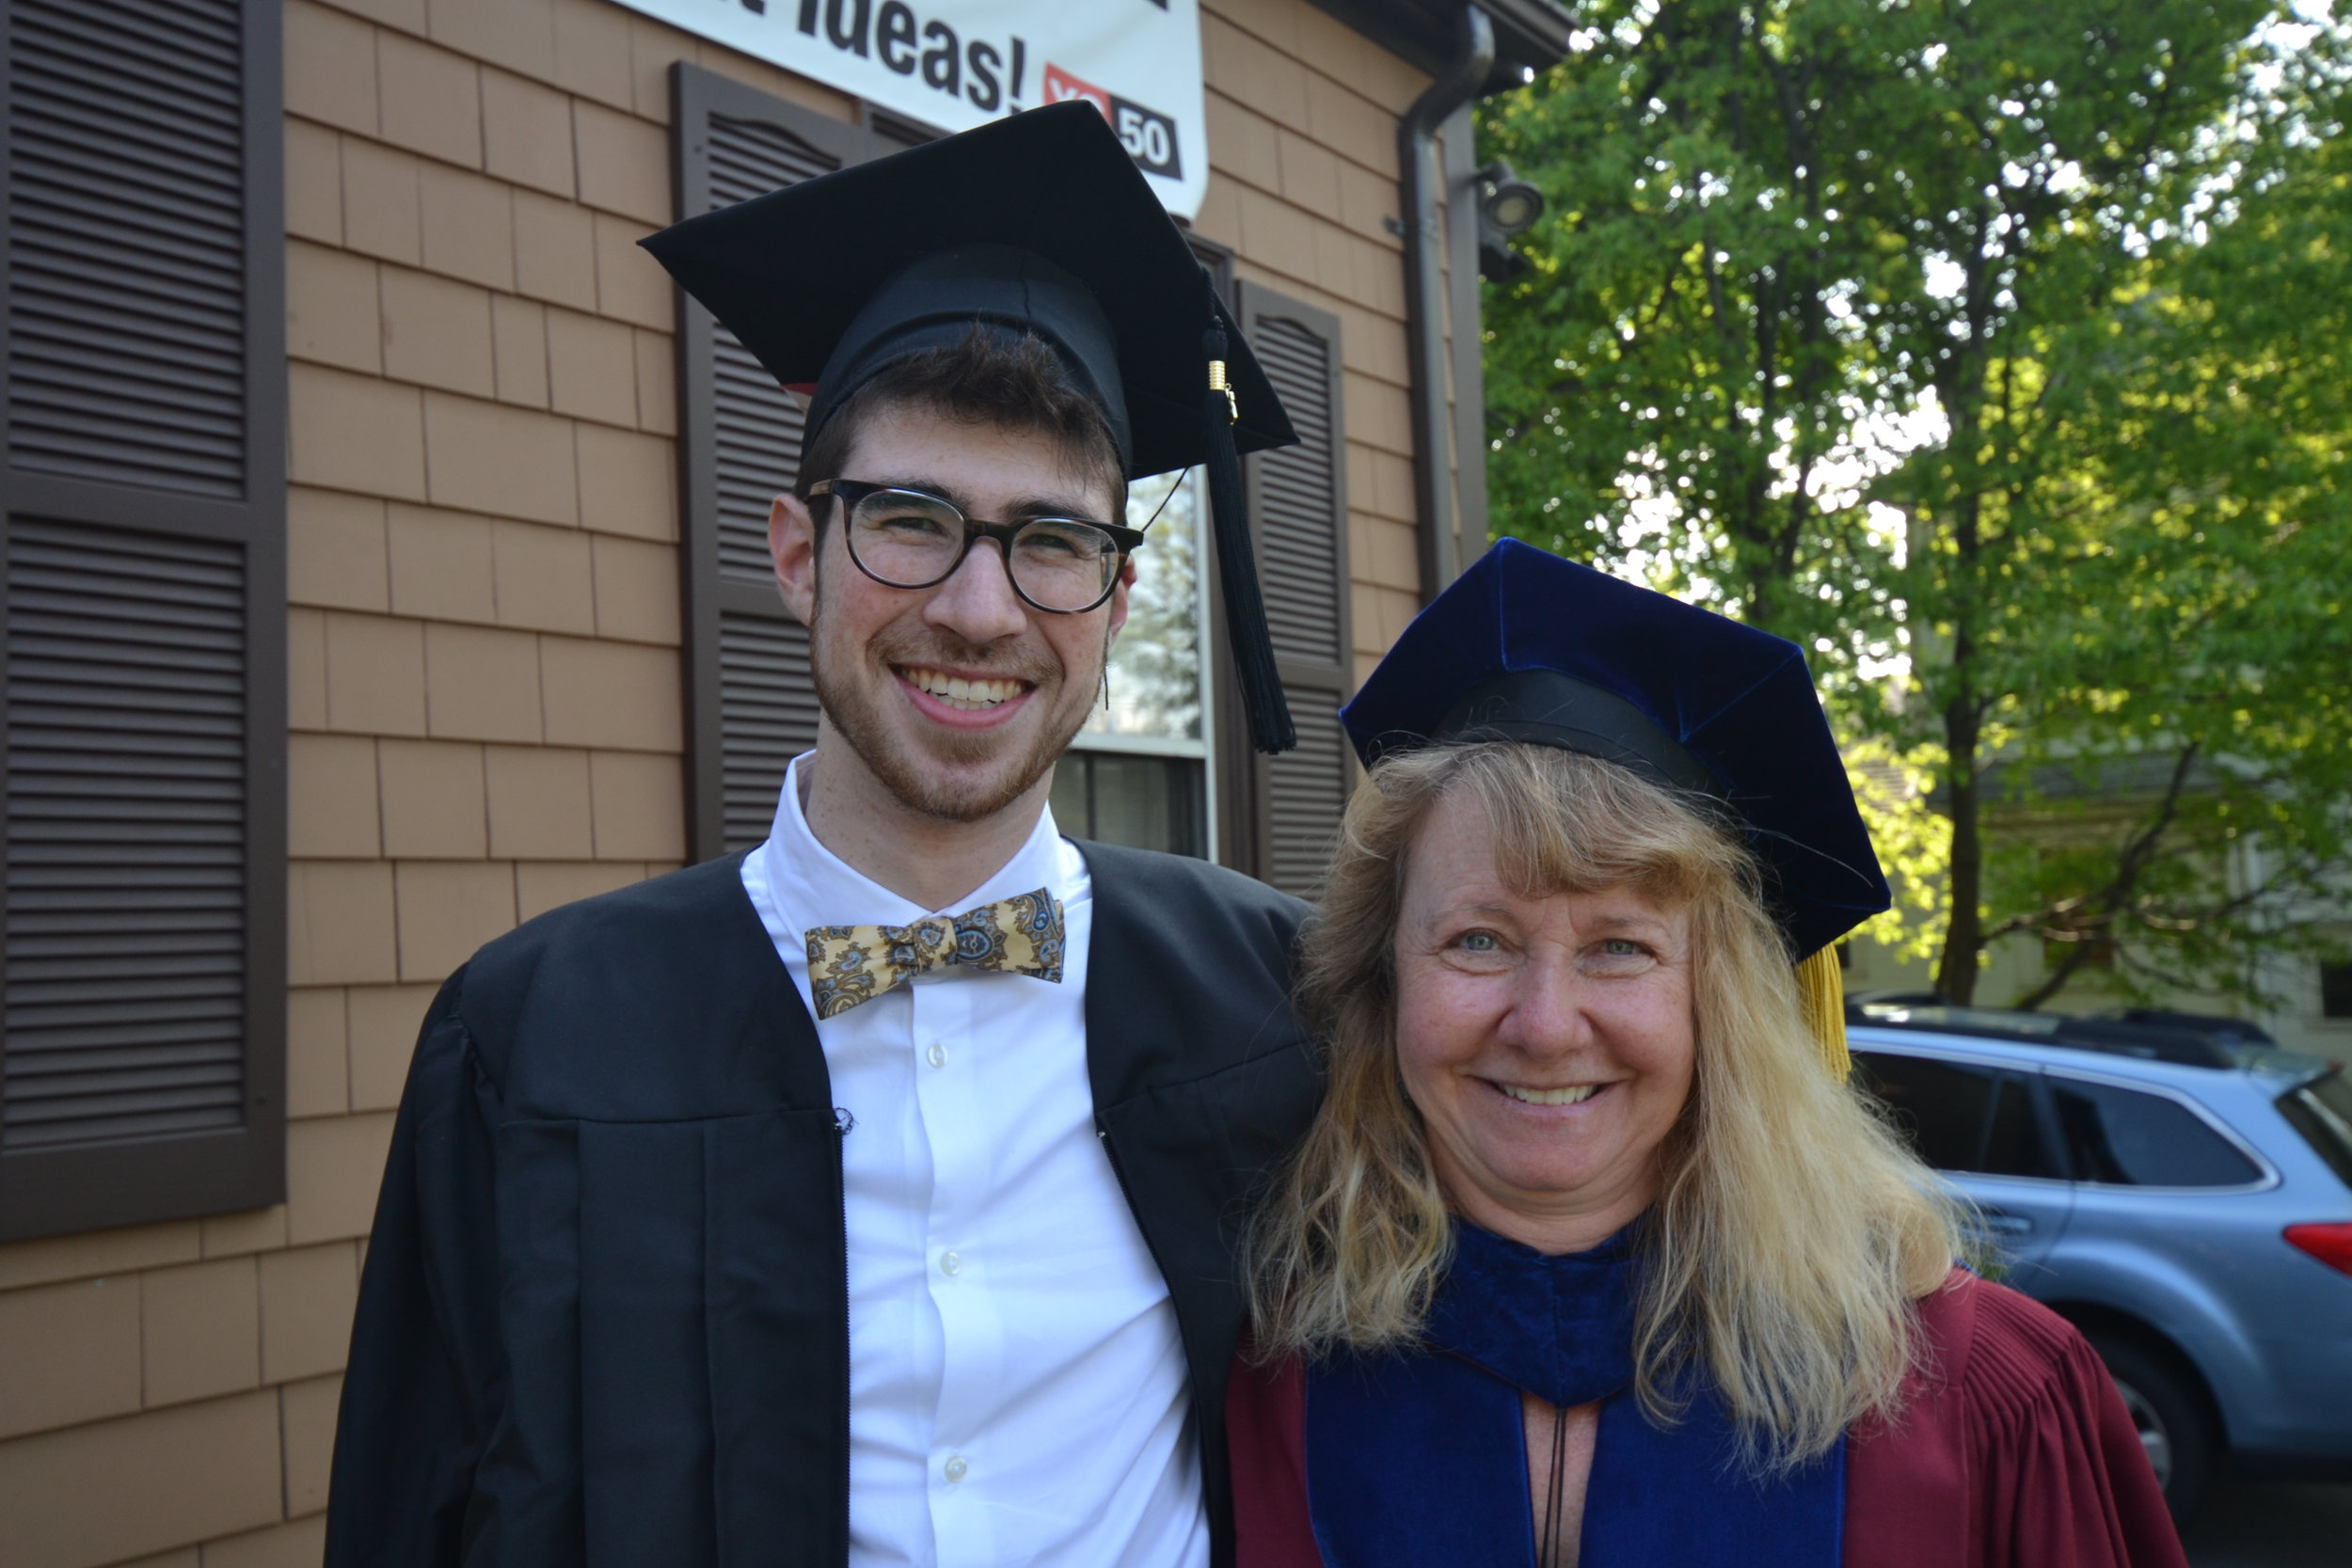 Sam with Professor Julie Dobrow of Tufts